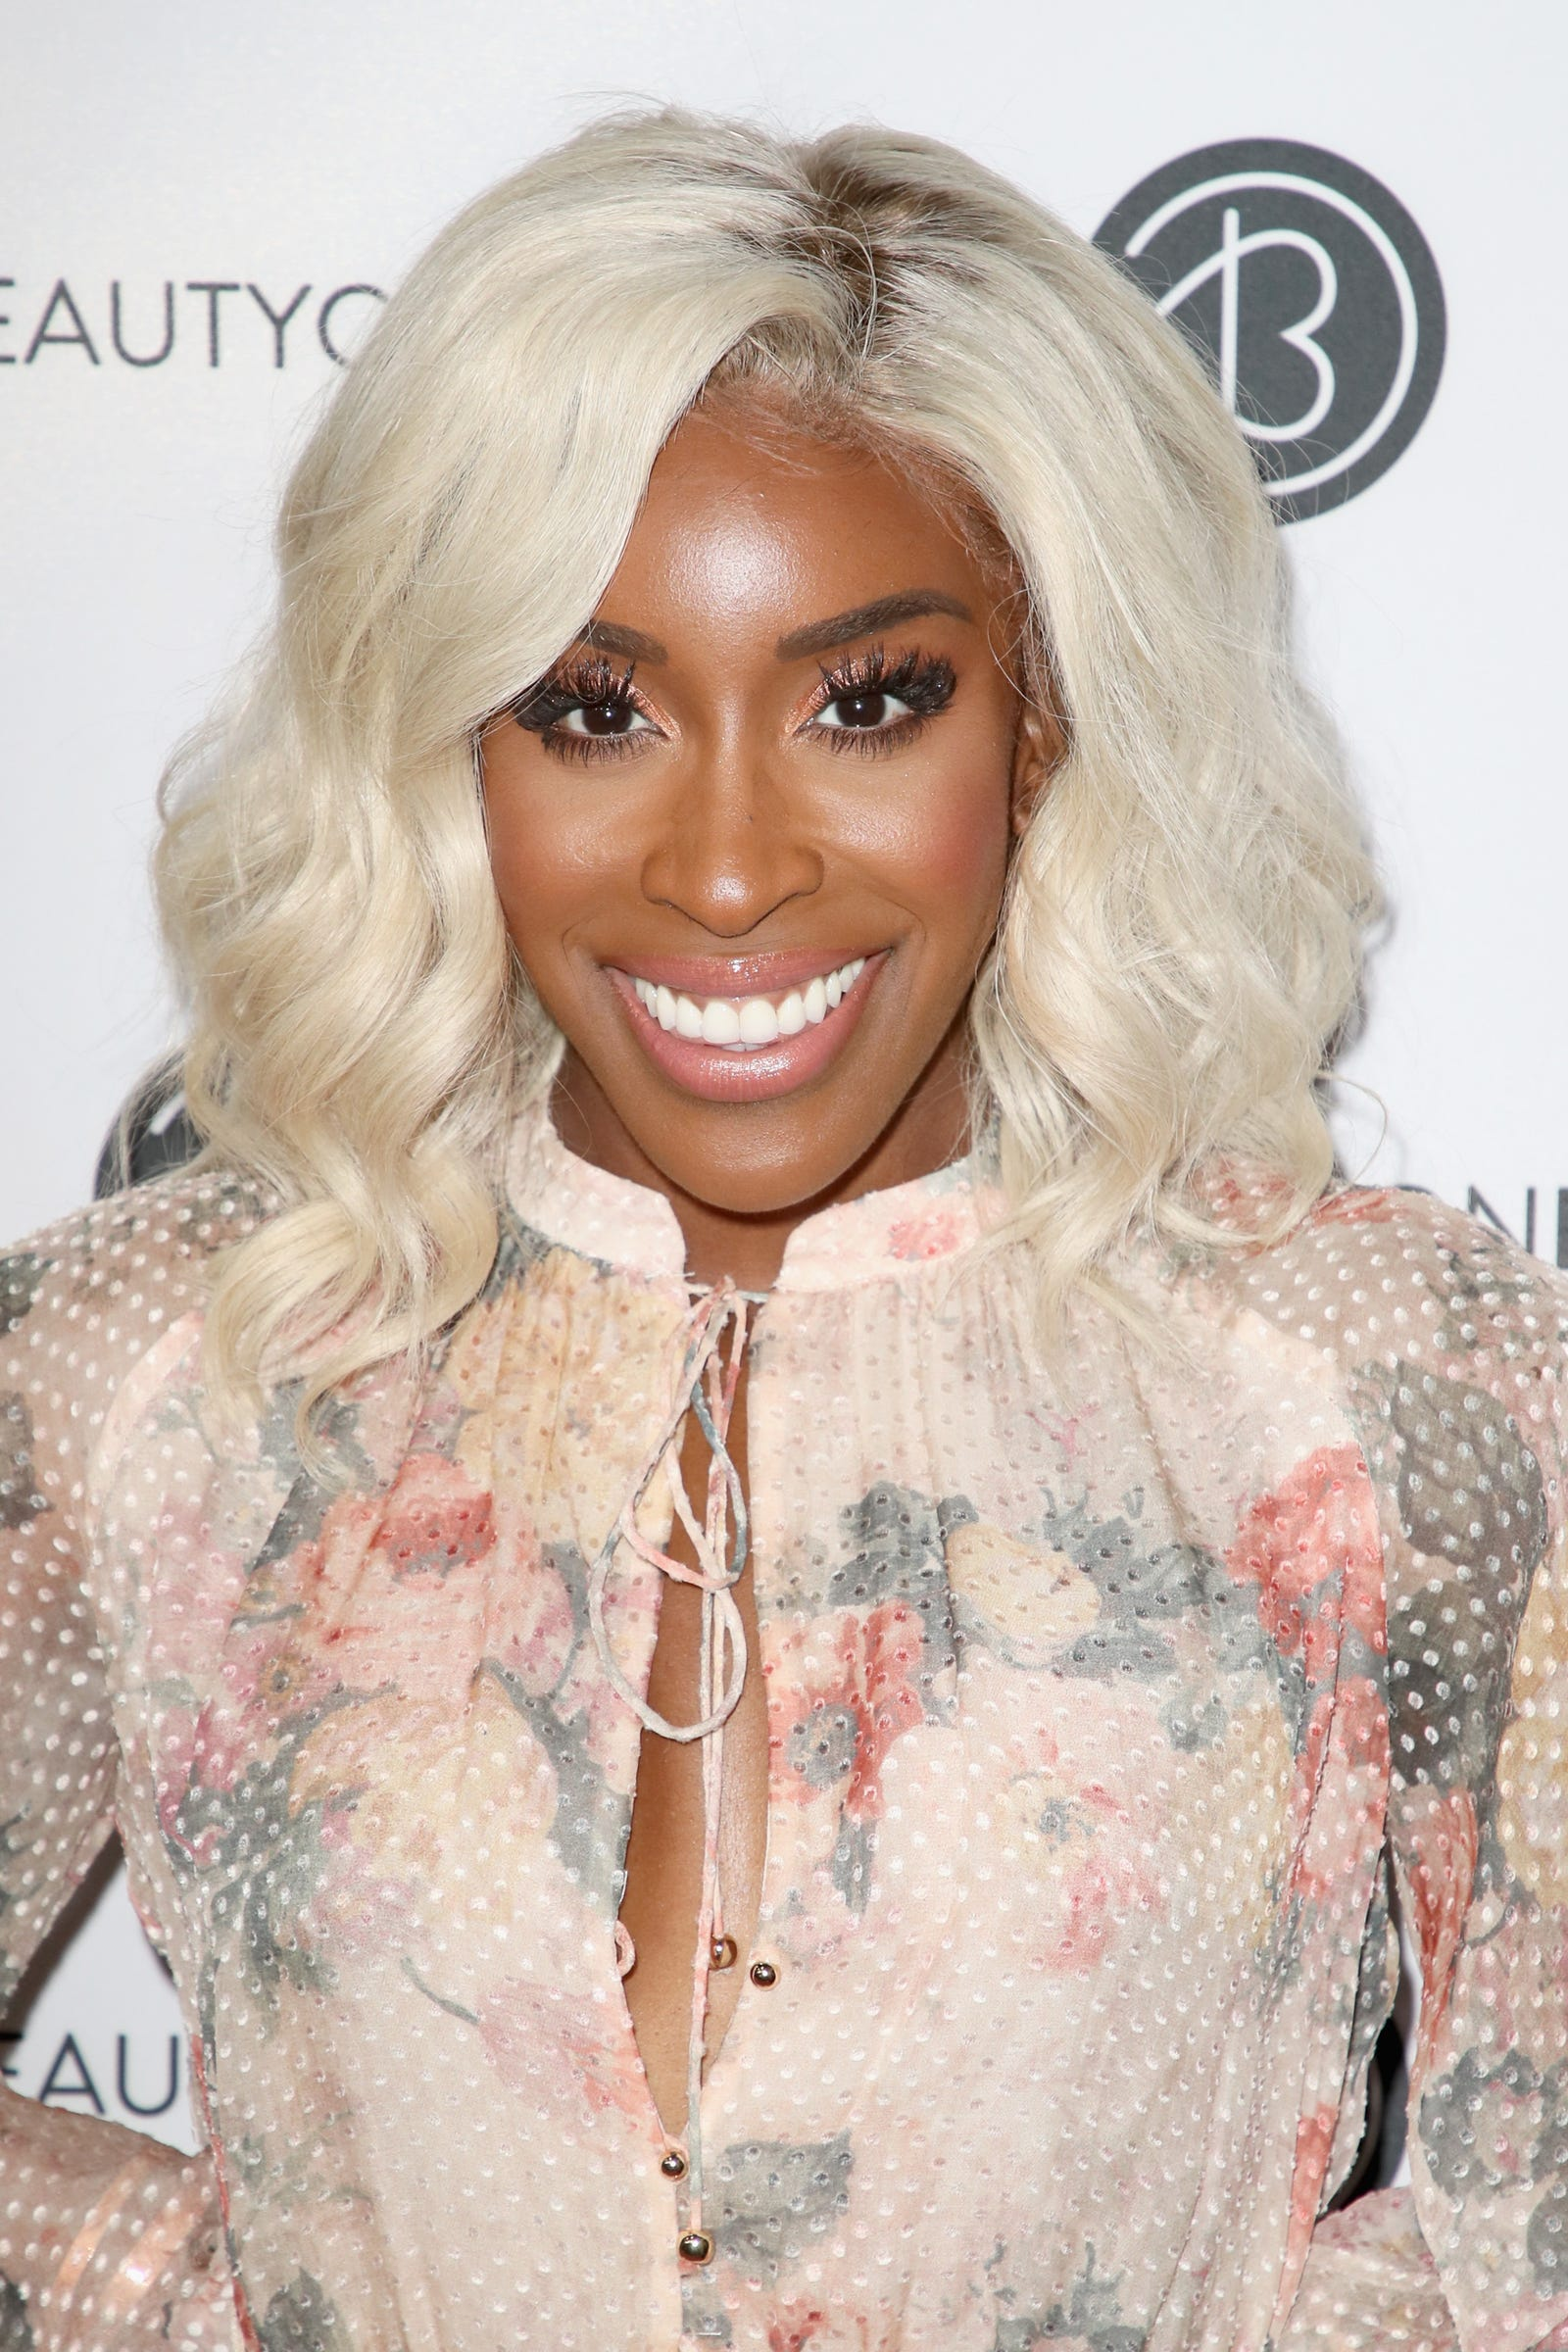 Jackie Aina attends the Beautycon Festival LA 2018 at the Los Angeles Convention Center on July 14, 2018 in Los Angeles, California.